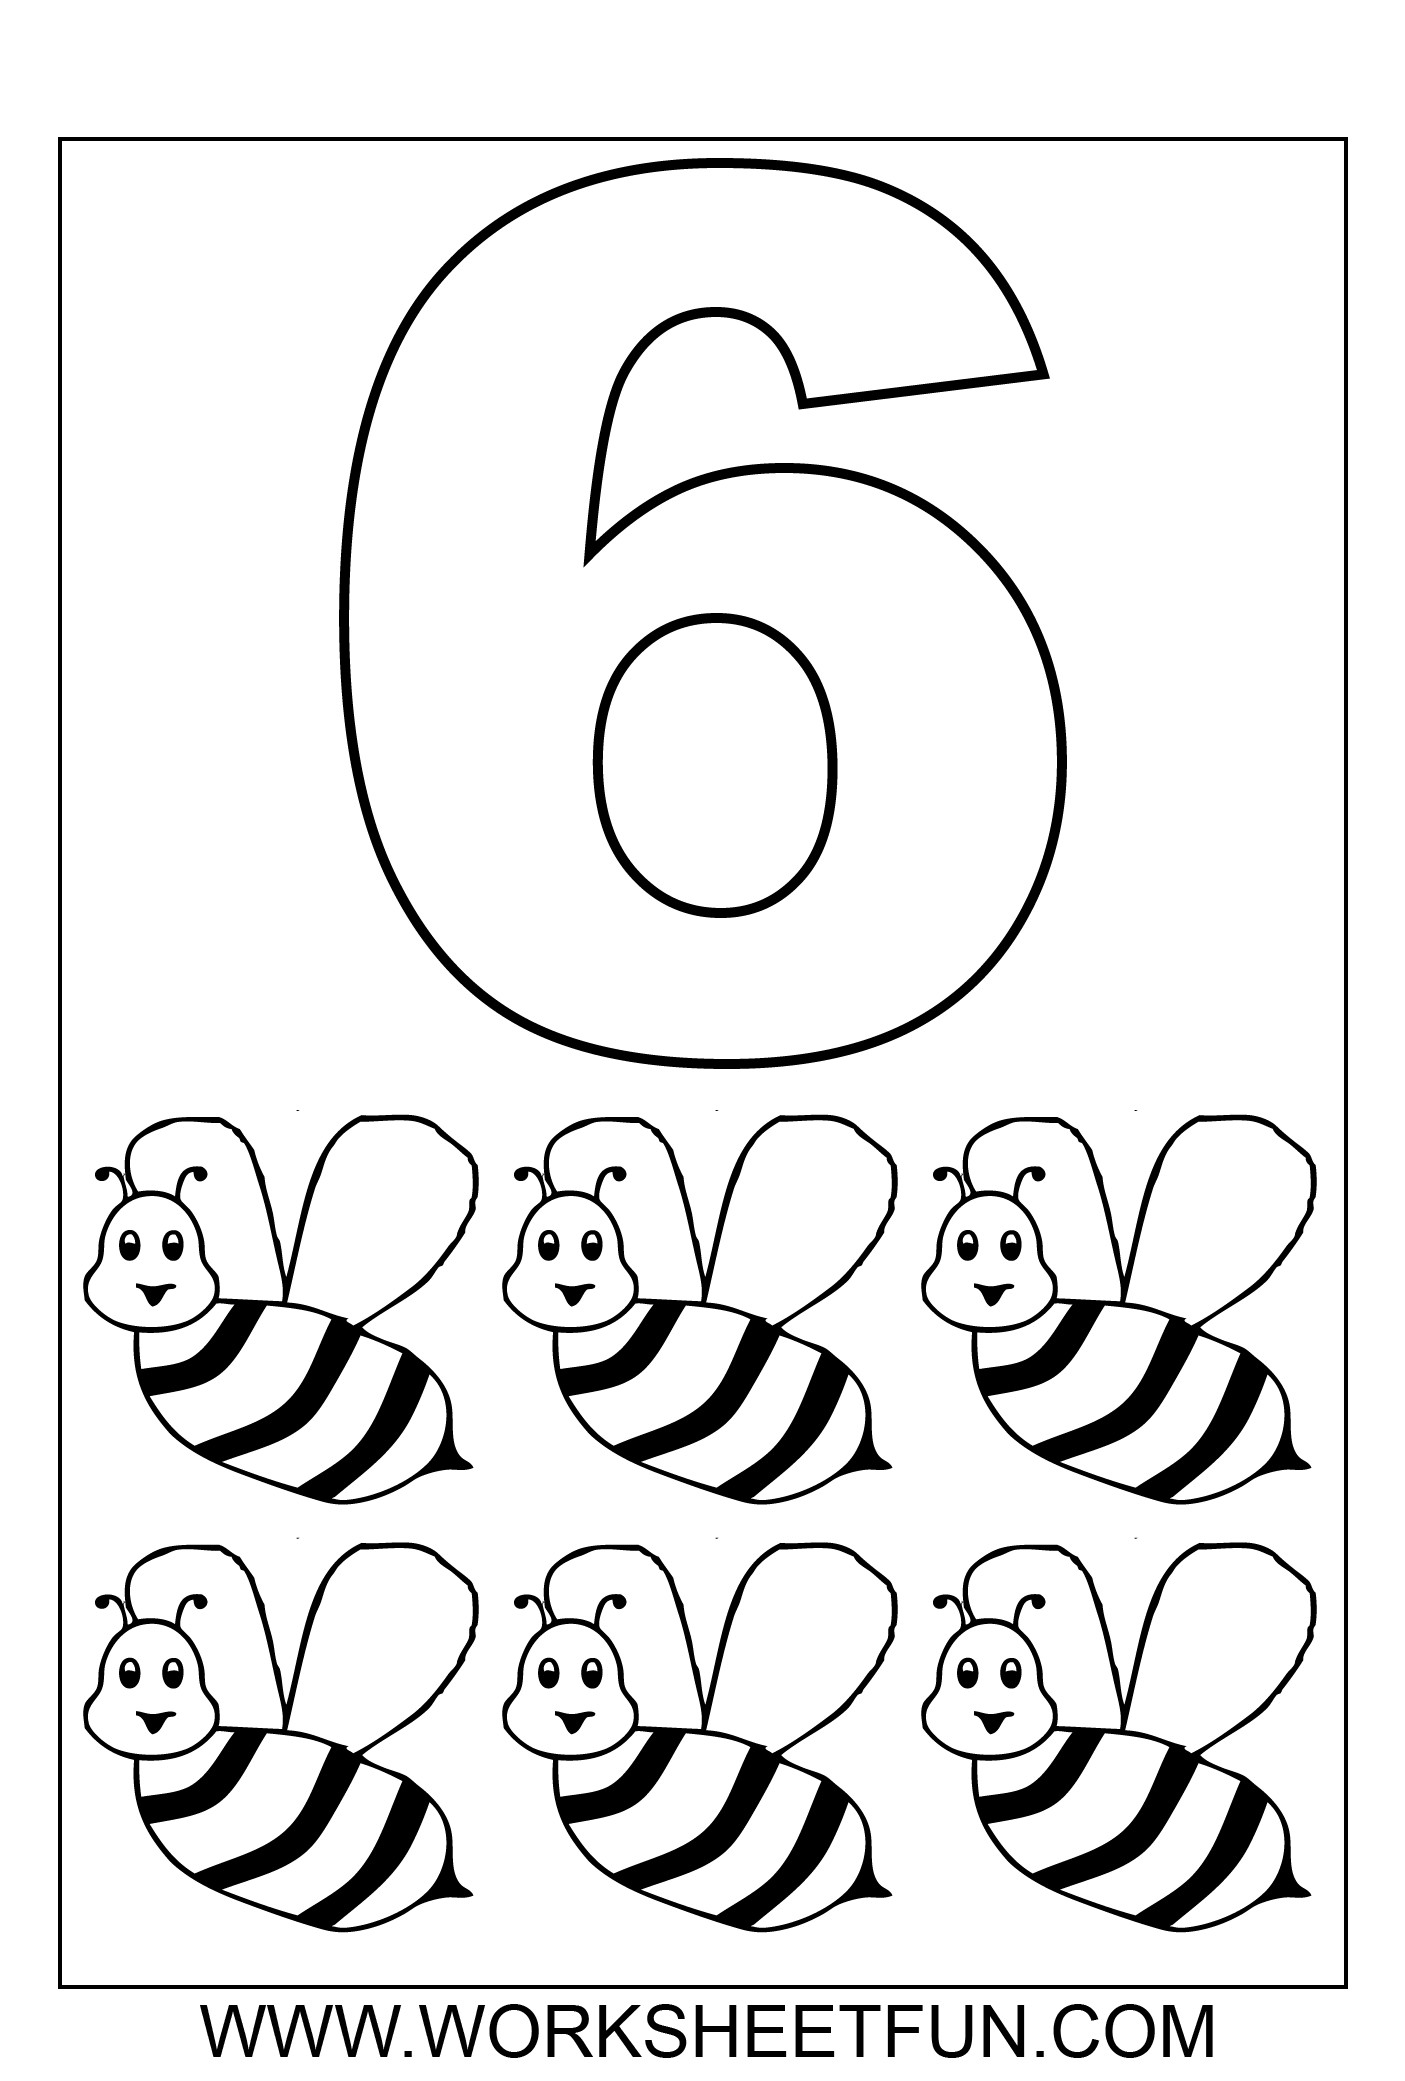 Numbers Coloring Pages  Number Coloring Pages 1 – 10 Worksheets FREE Printable